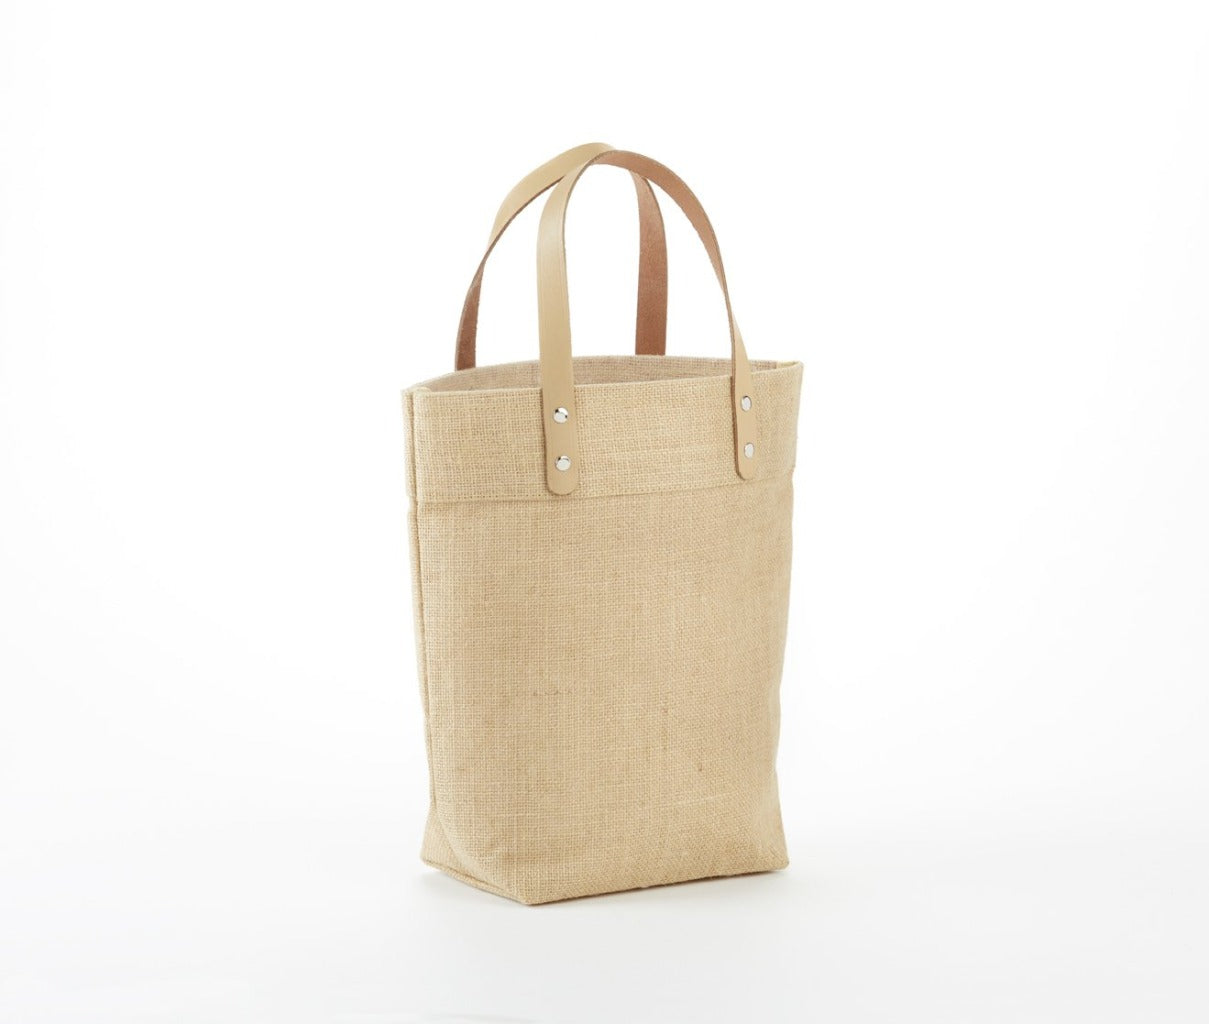 jc0219-jute-gift-bag-Natural-Oasispromos